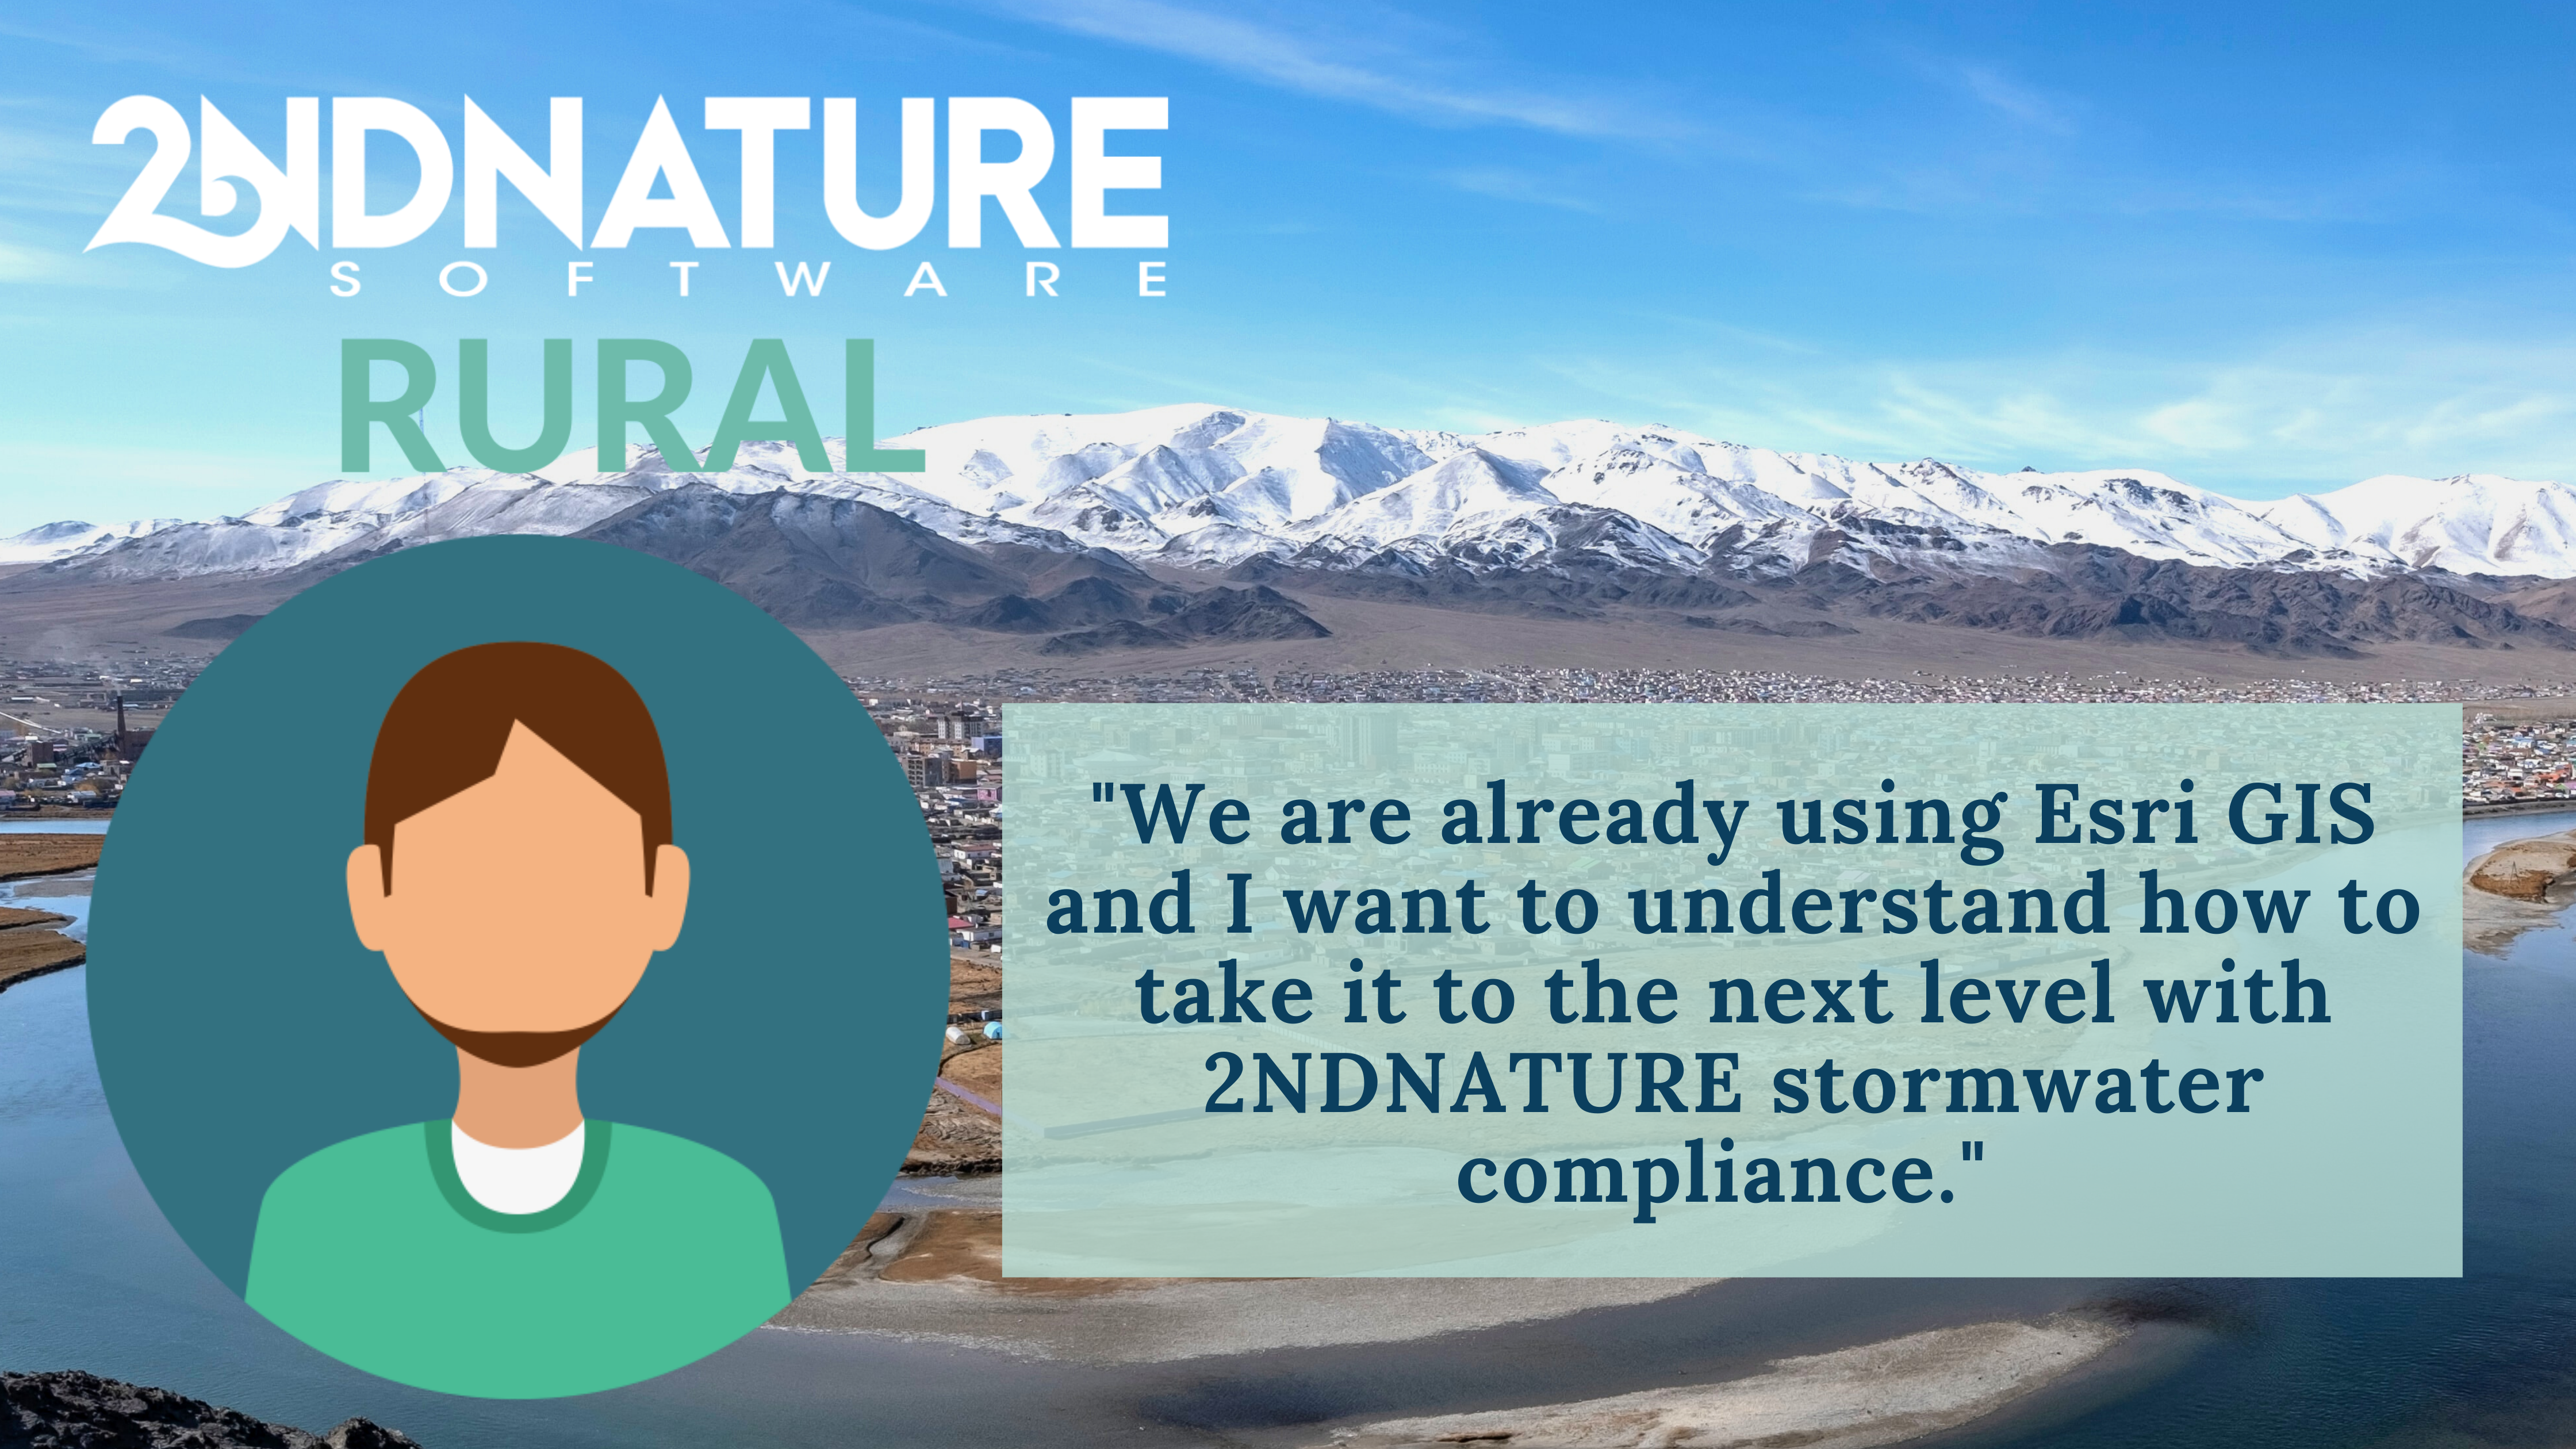 2NDNATURE RURAL Stormwater Solution for Small MS4 Cities and Municipalities